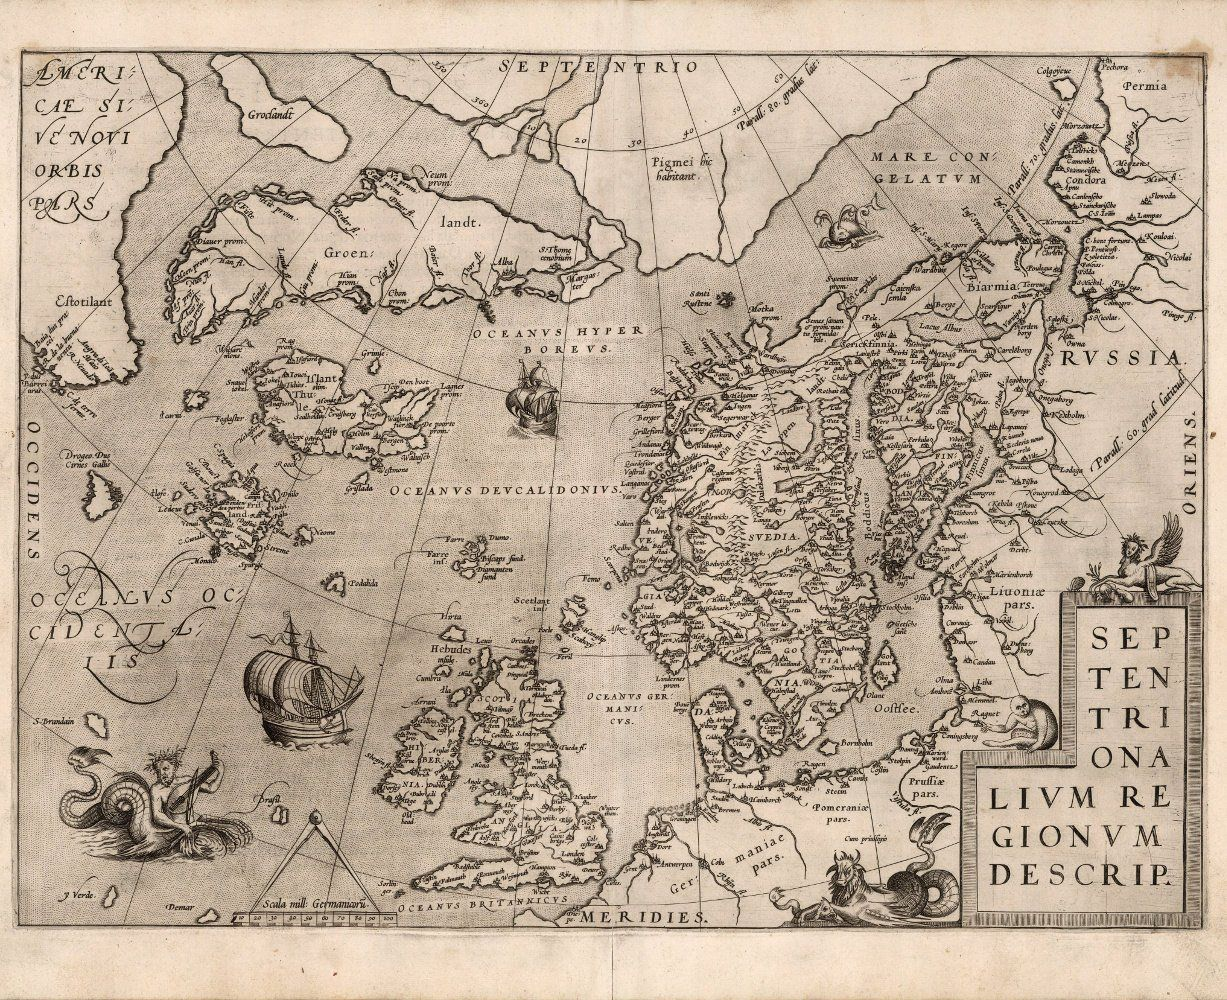 Old Map Of Scandinavia Sweden Finland 16th Century Fine Art Reproduction Mp038 Old Map Antique Maps Art Reproductions